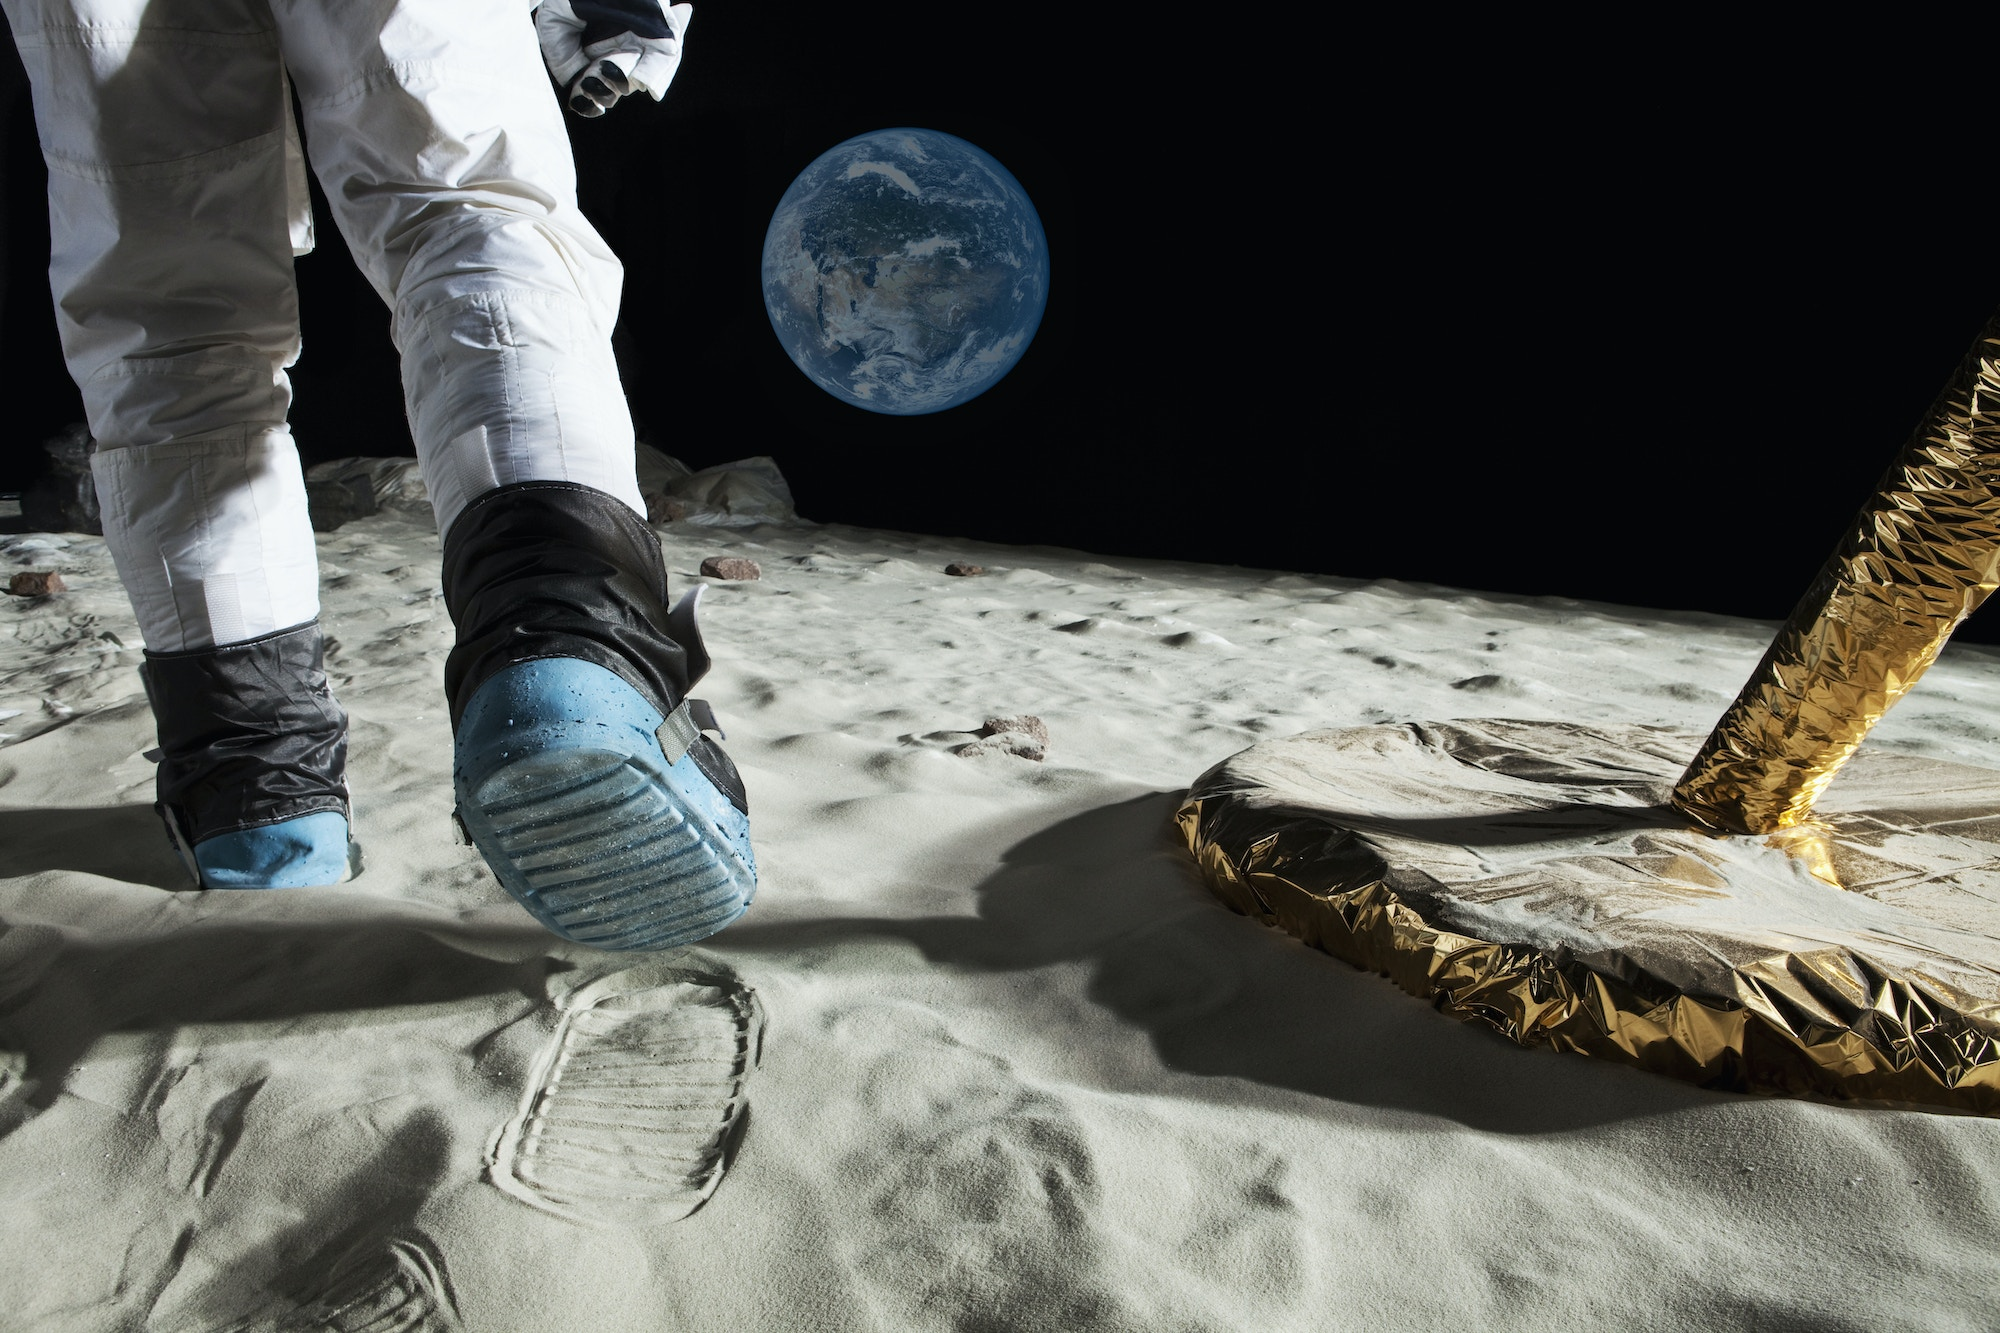 An astronaut walking on the Moon with the Earth rising in the background